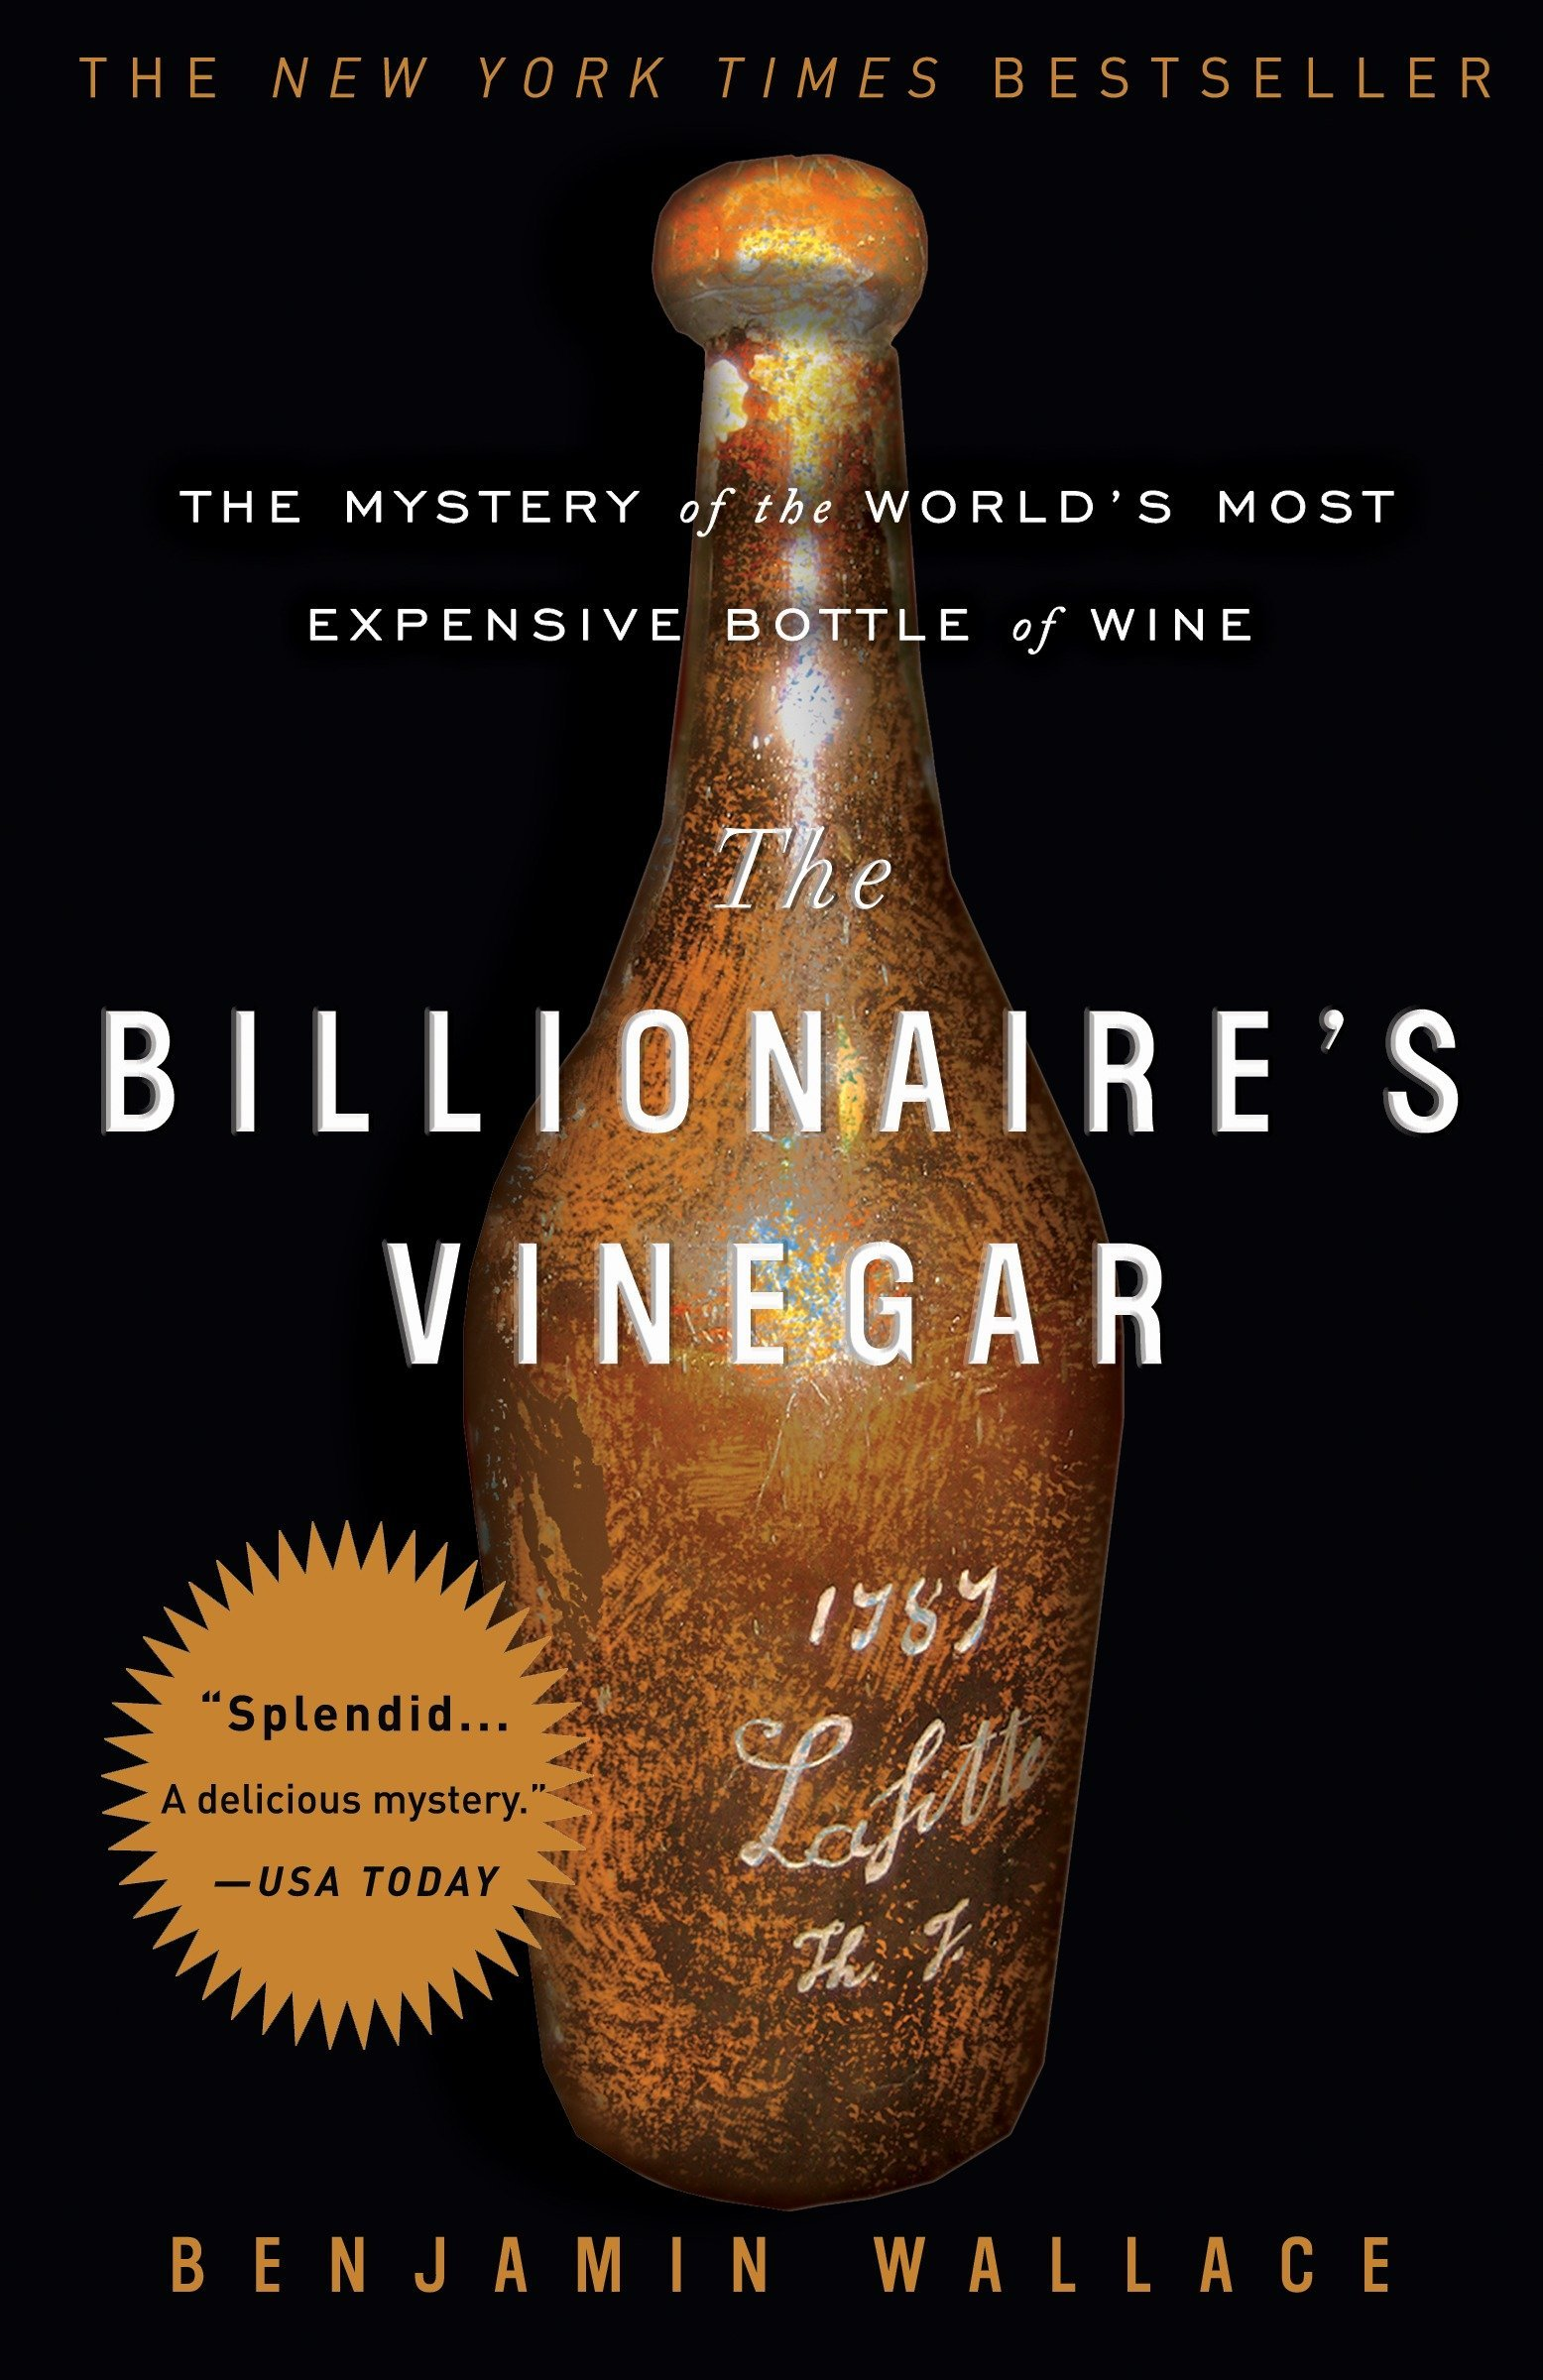 7de9adc16ca1 The Billionaire s Vinegar  The Mystery of the World s Most Expensive ...